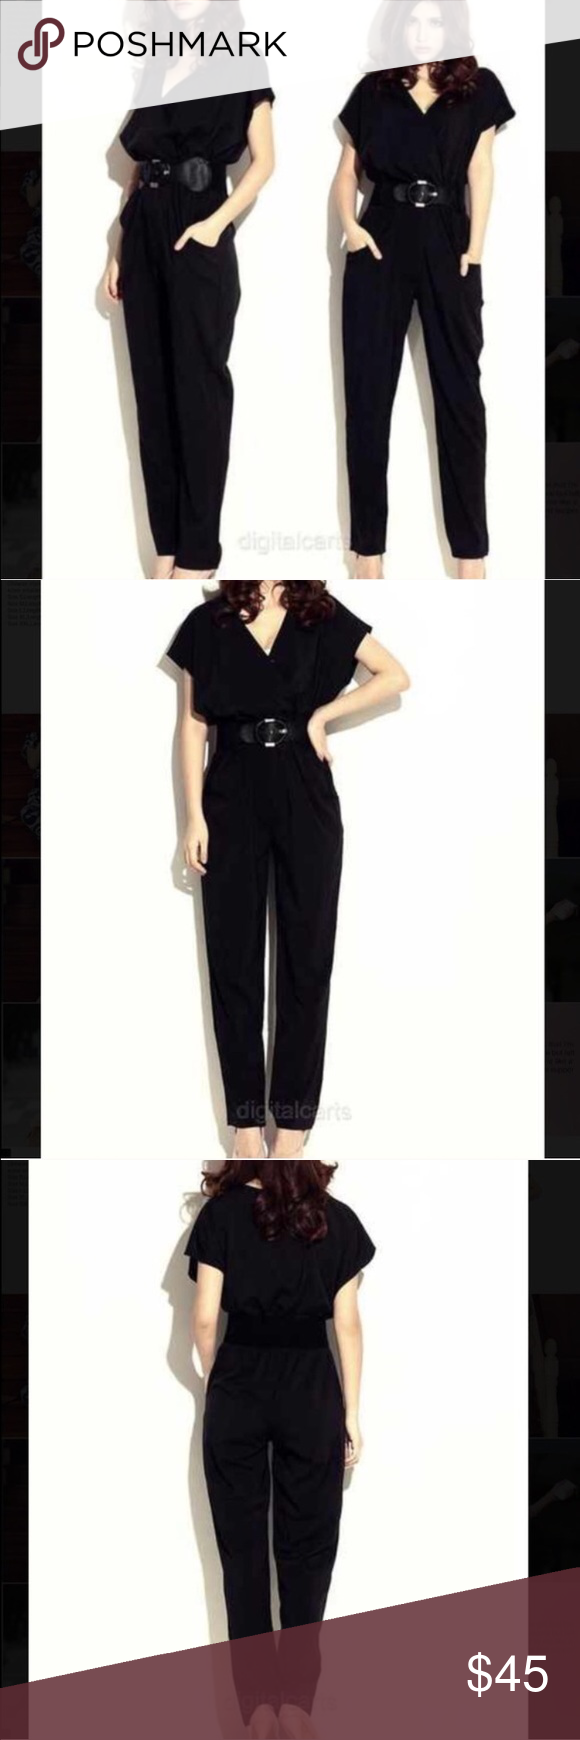 Black jumpsuit Beautiful new black jumpsuit. Never worn. No size tag but it'll fit a medium or large. This is not FP, but it's the same style of something they would sell Free People Pants Jumpsuits & Rompers